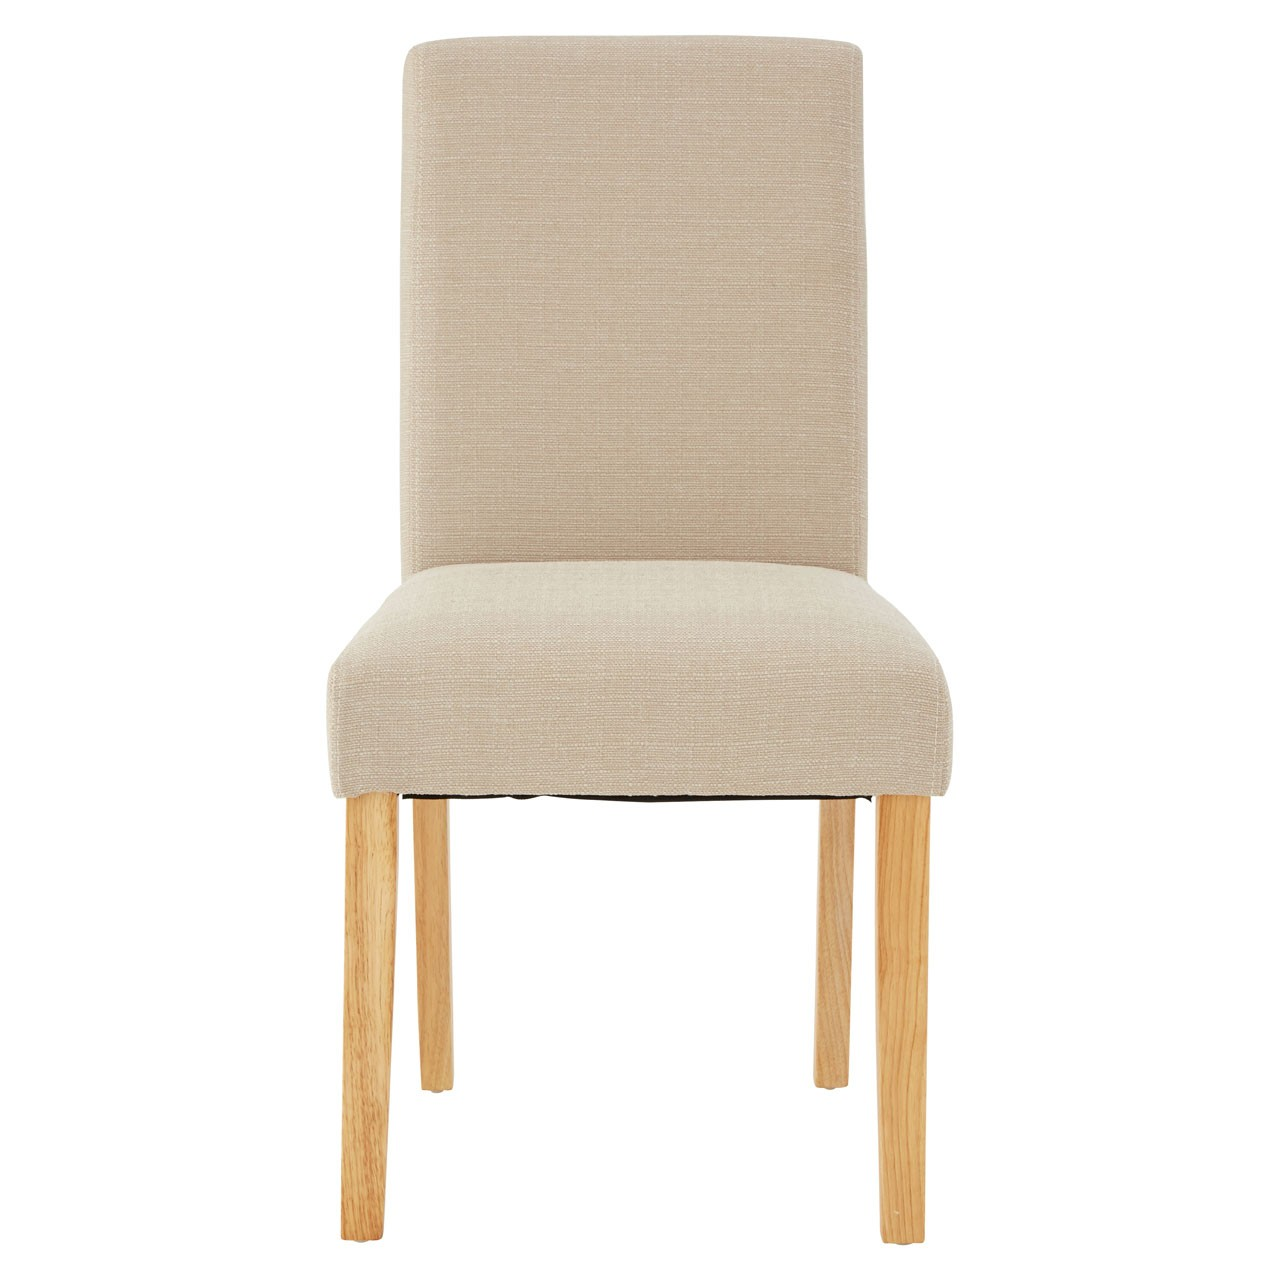 Barnet Dining Chair - Light Stone Linen - Set Of 2